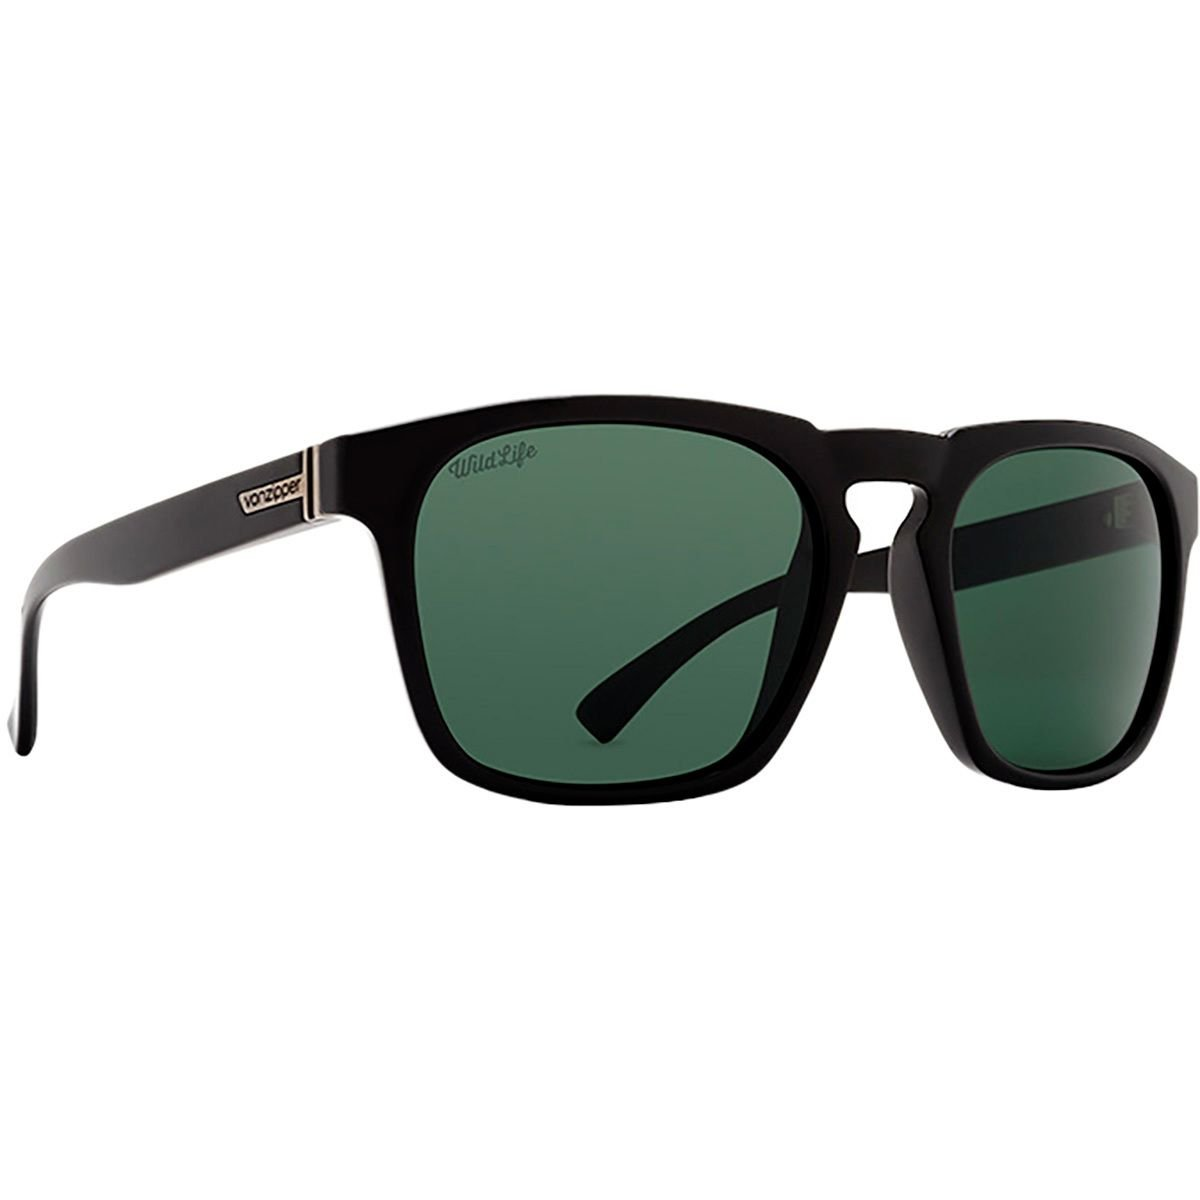 3fcf5bdb0f Amazon.com  VonZipper Adults Banner Polarized Sunglasses